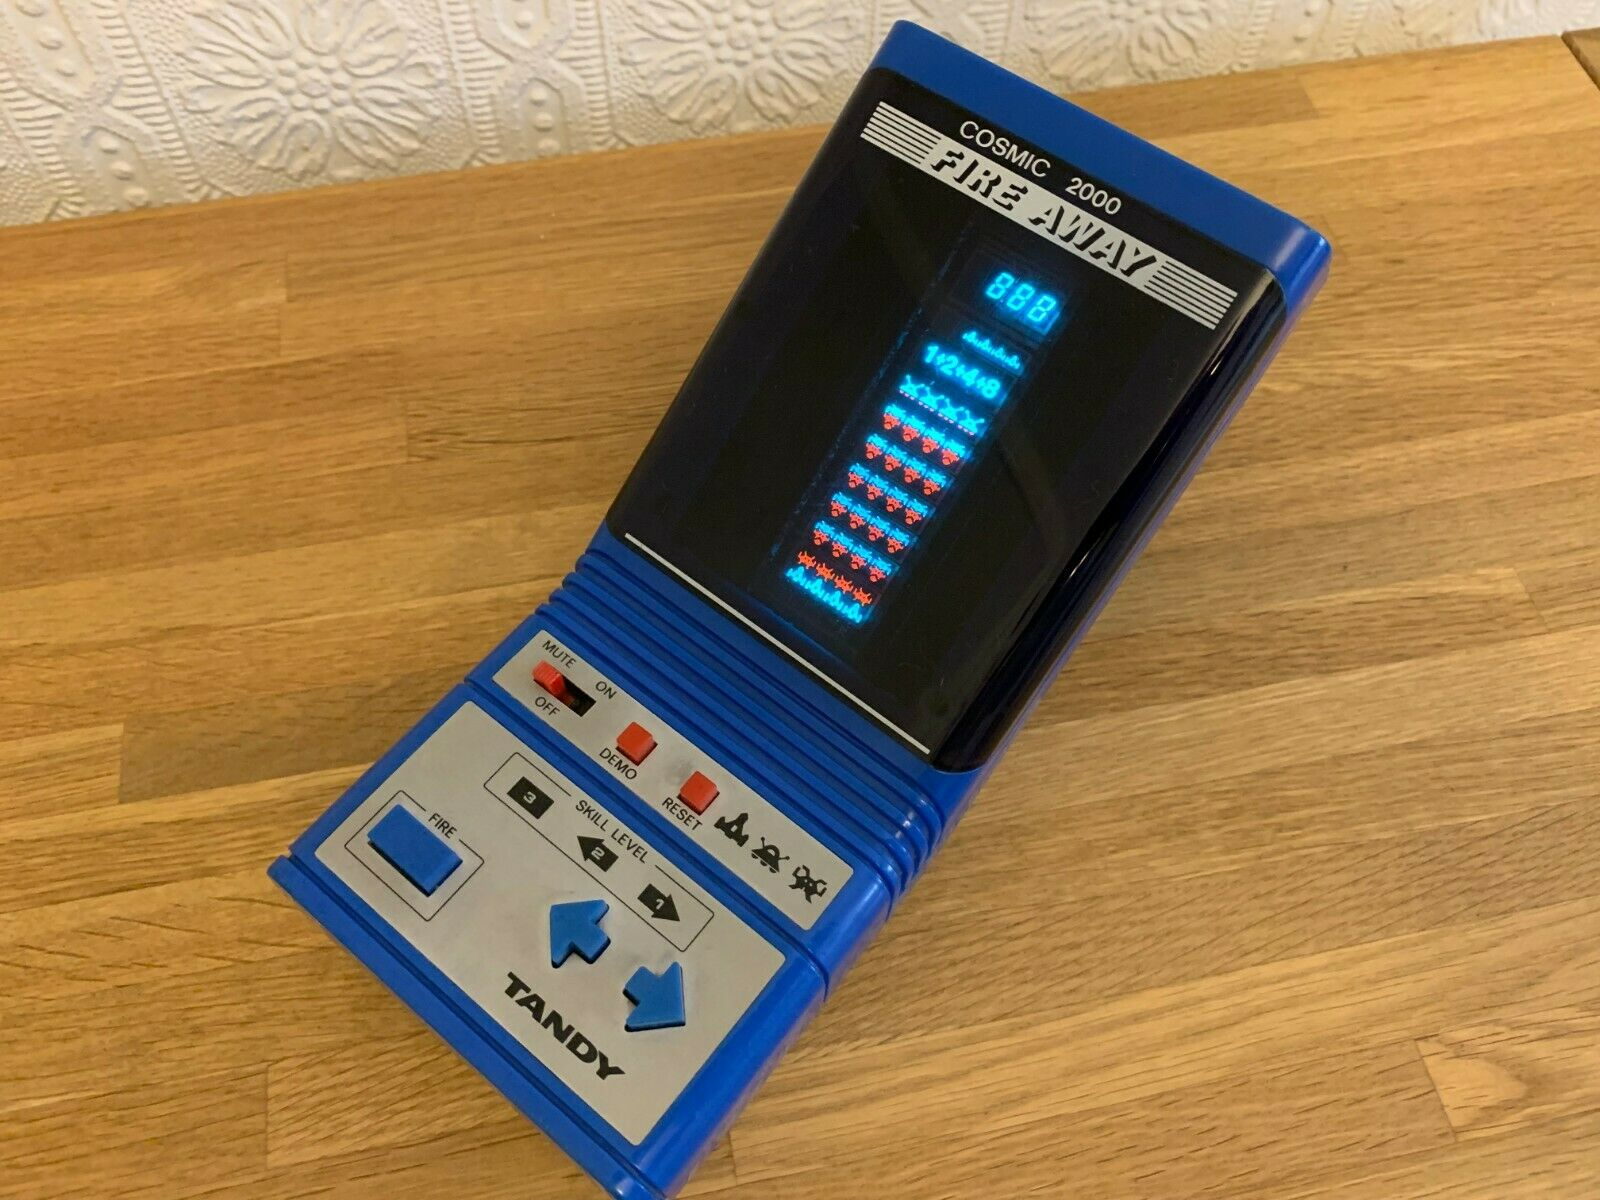 Rare Tandy Cosmic 2000 Fire Away Vintage 1984 Tabletop Electronic Game - Superb